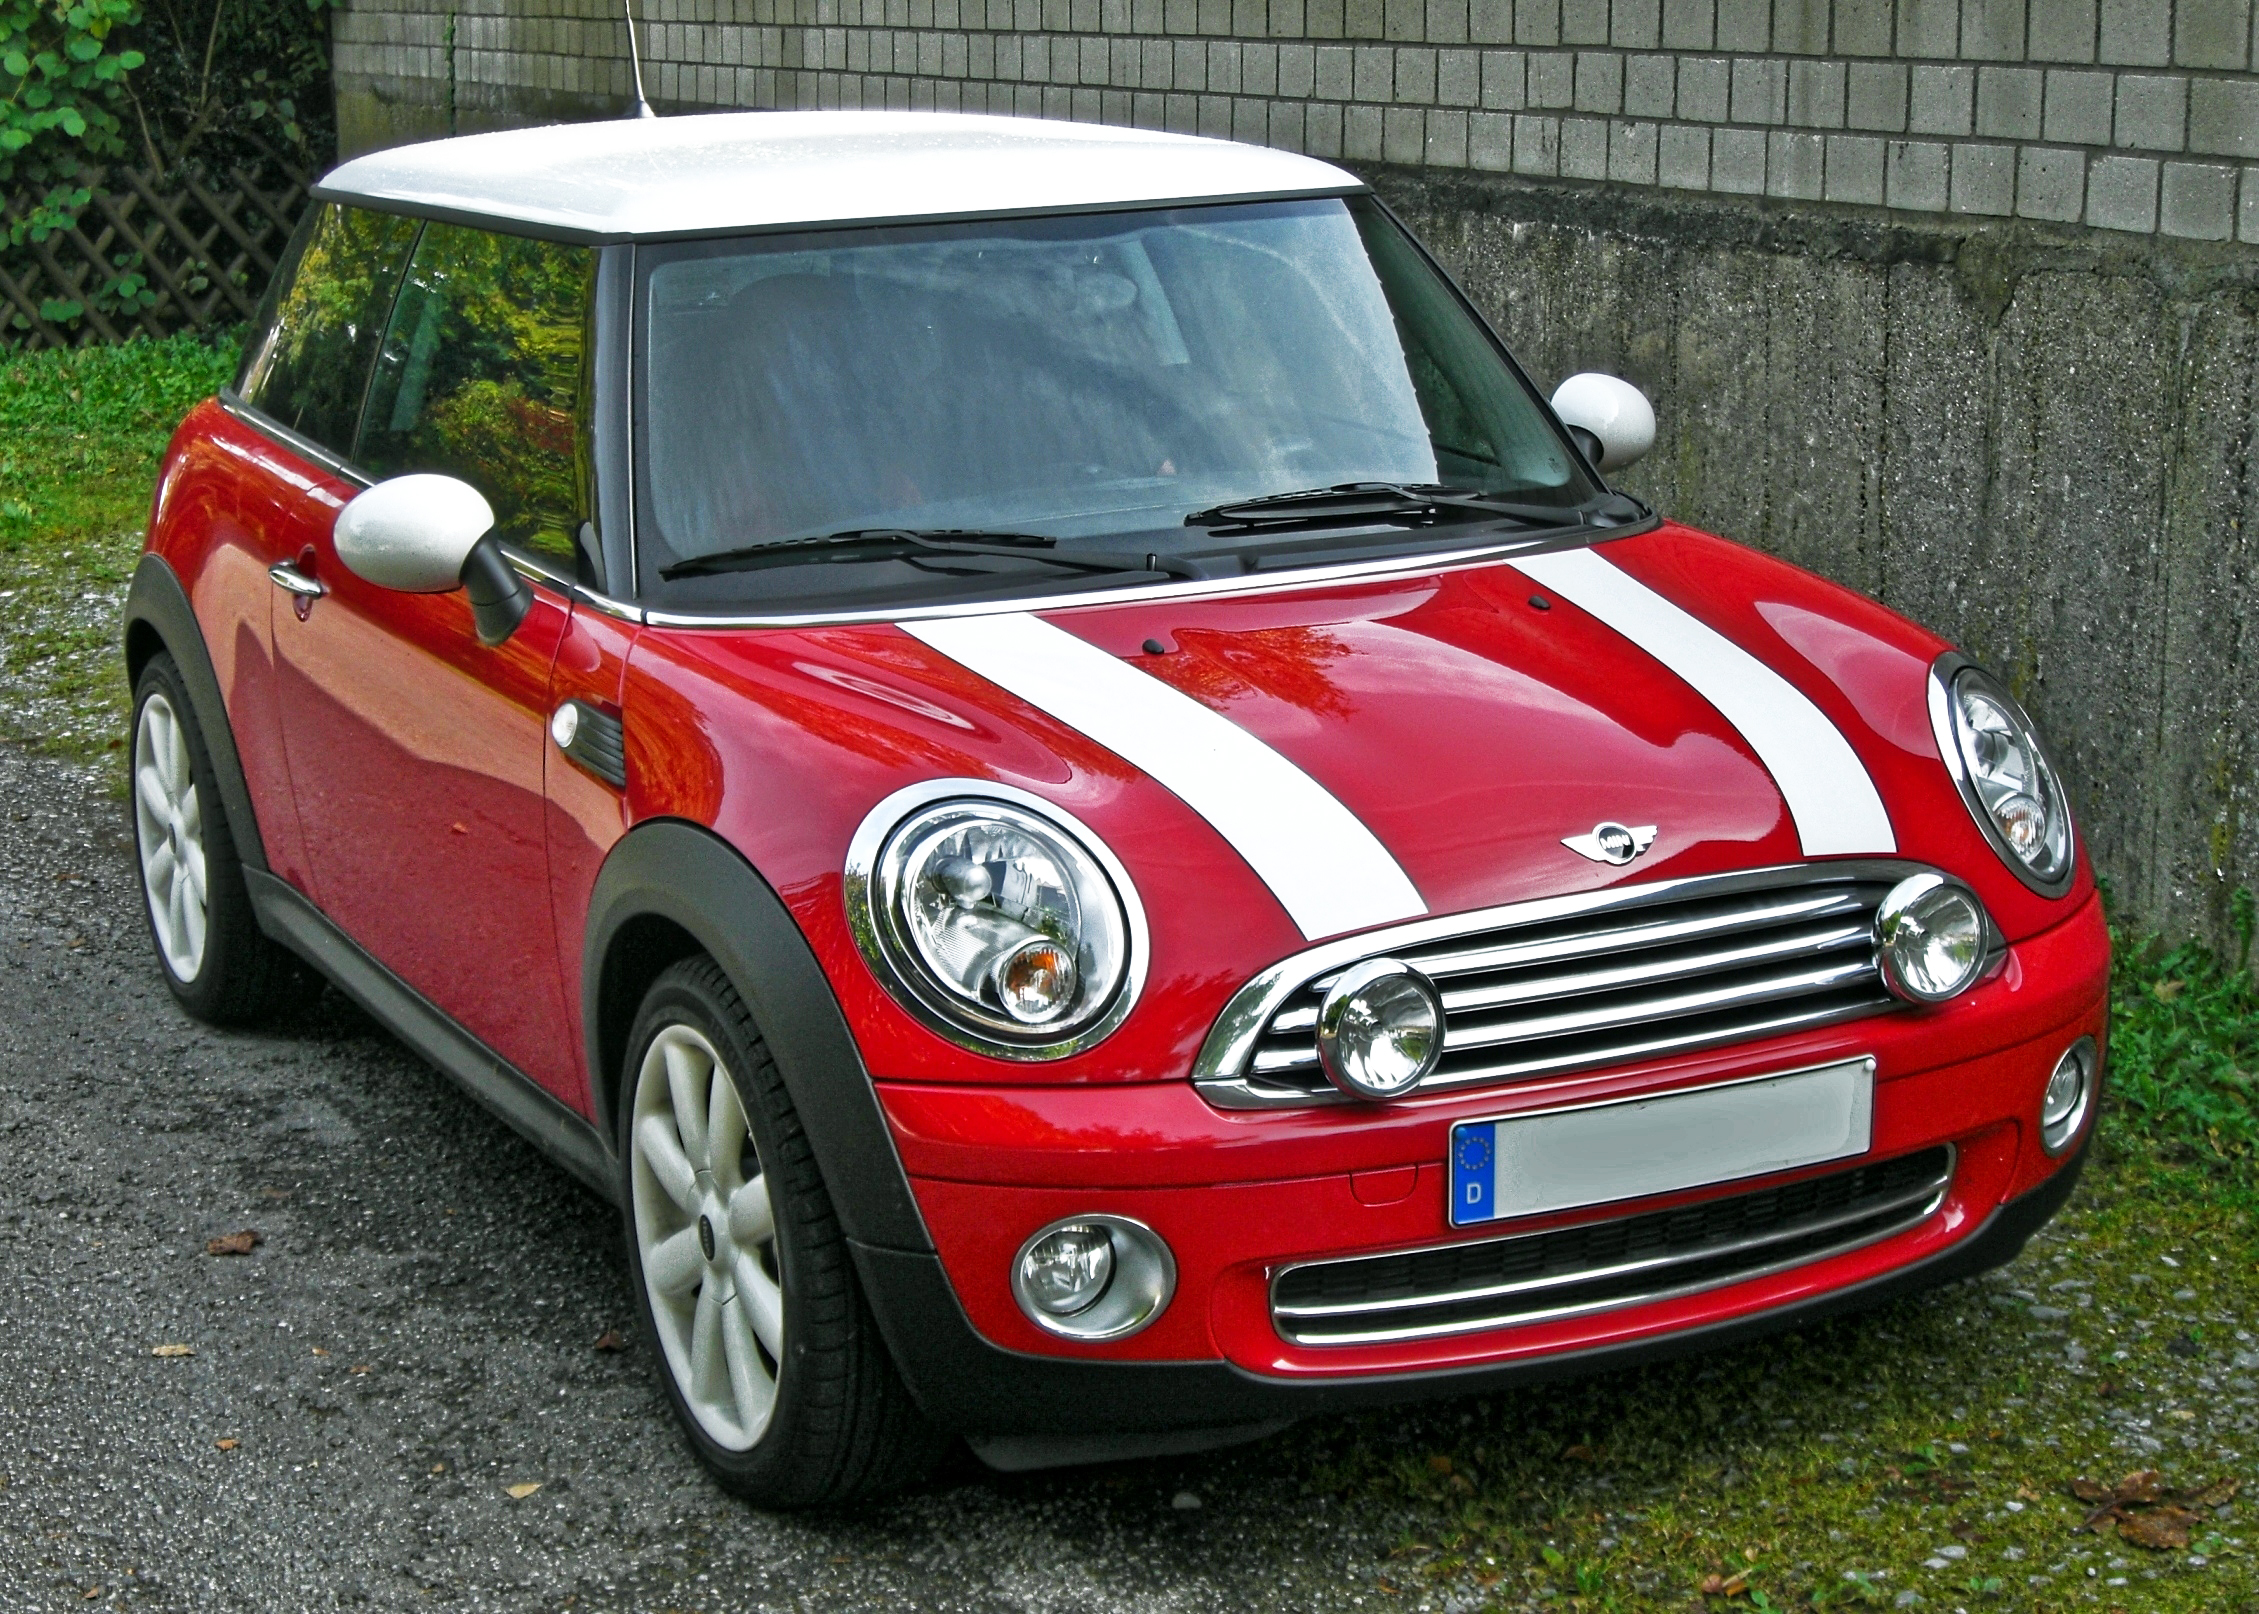 datei mini cooper facelift front jpg wikipedia. Black Bedroom Furniture Sets. Home Design Ideas